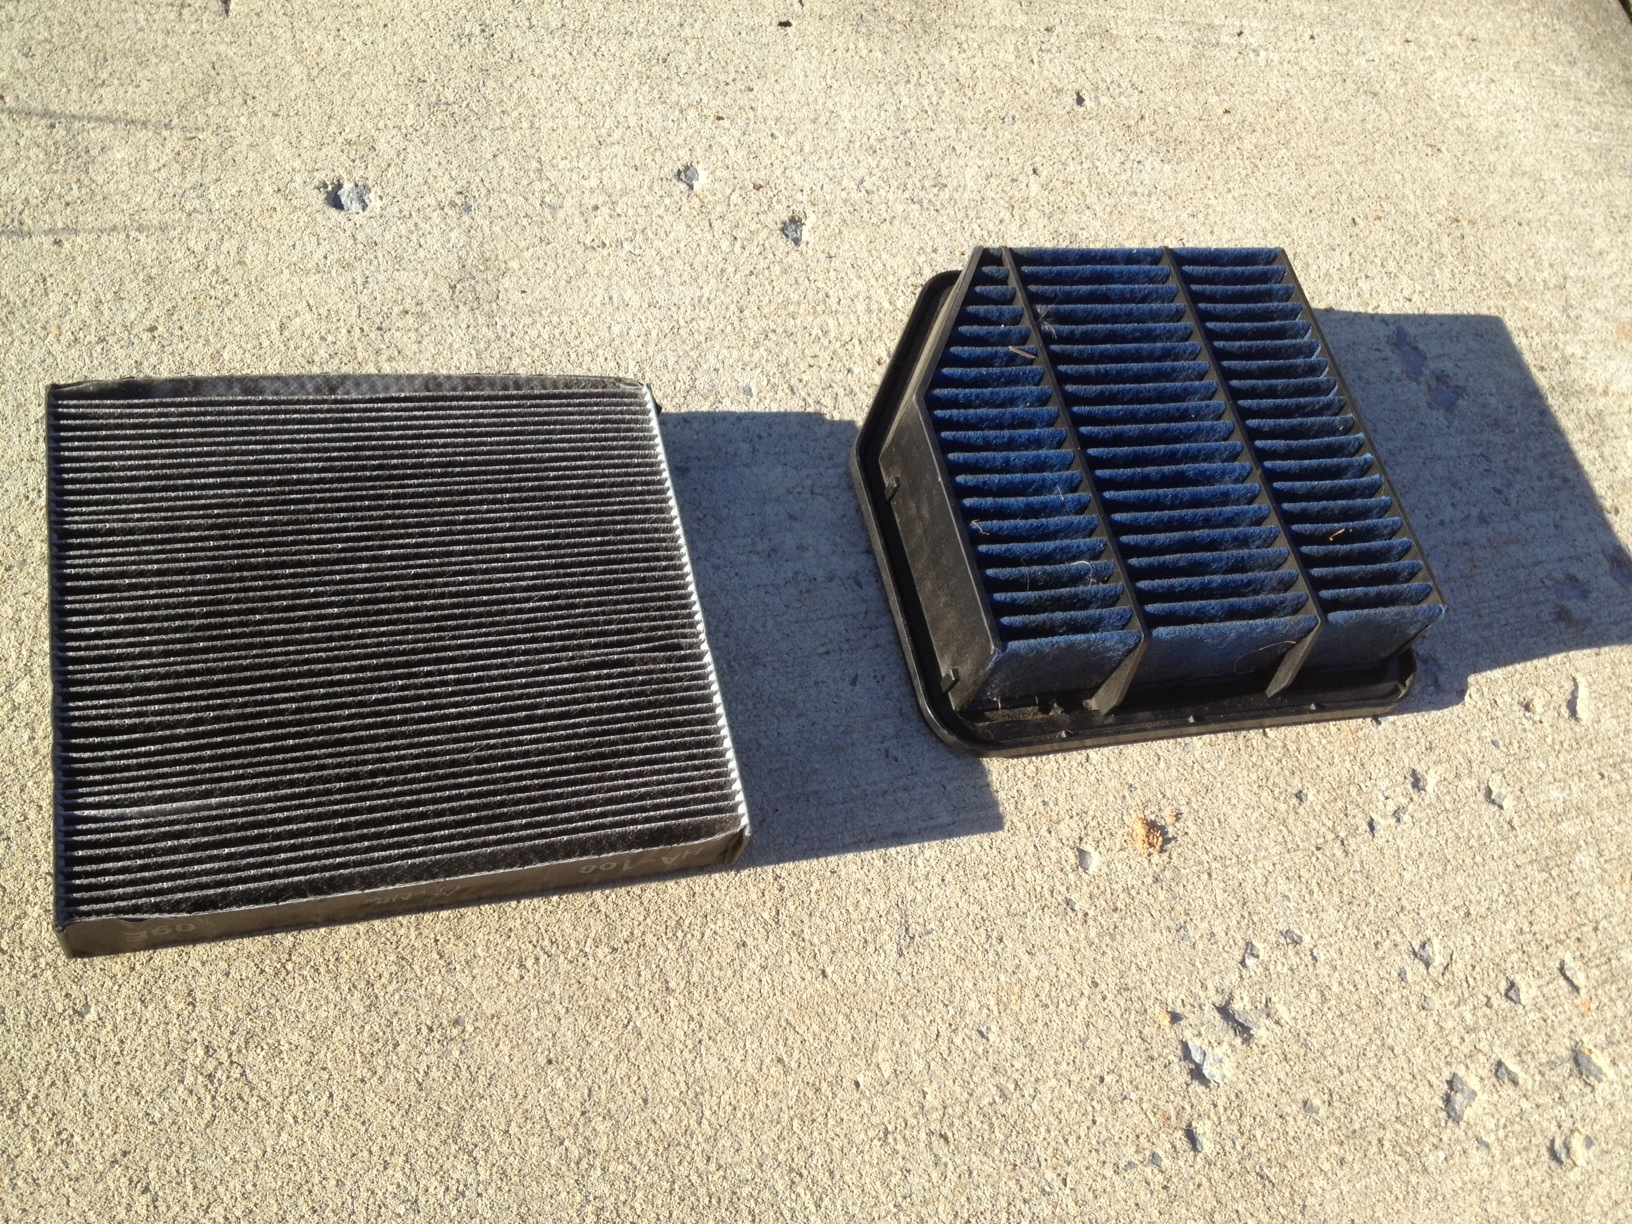 Cleaning The Blitz Engine Air Filter And Cabin Air Filter